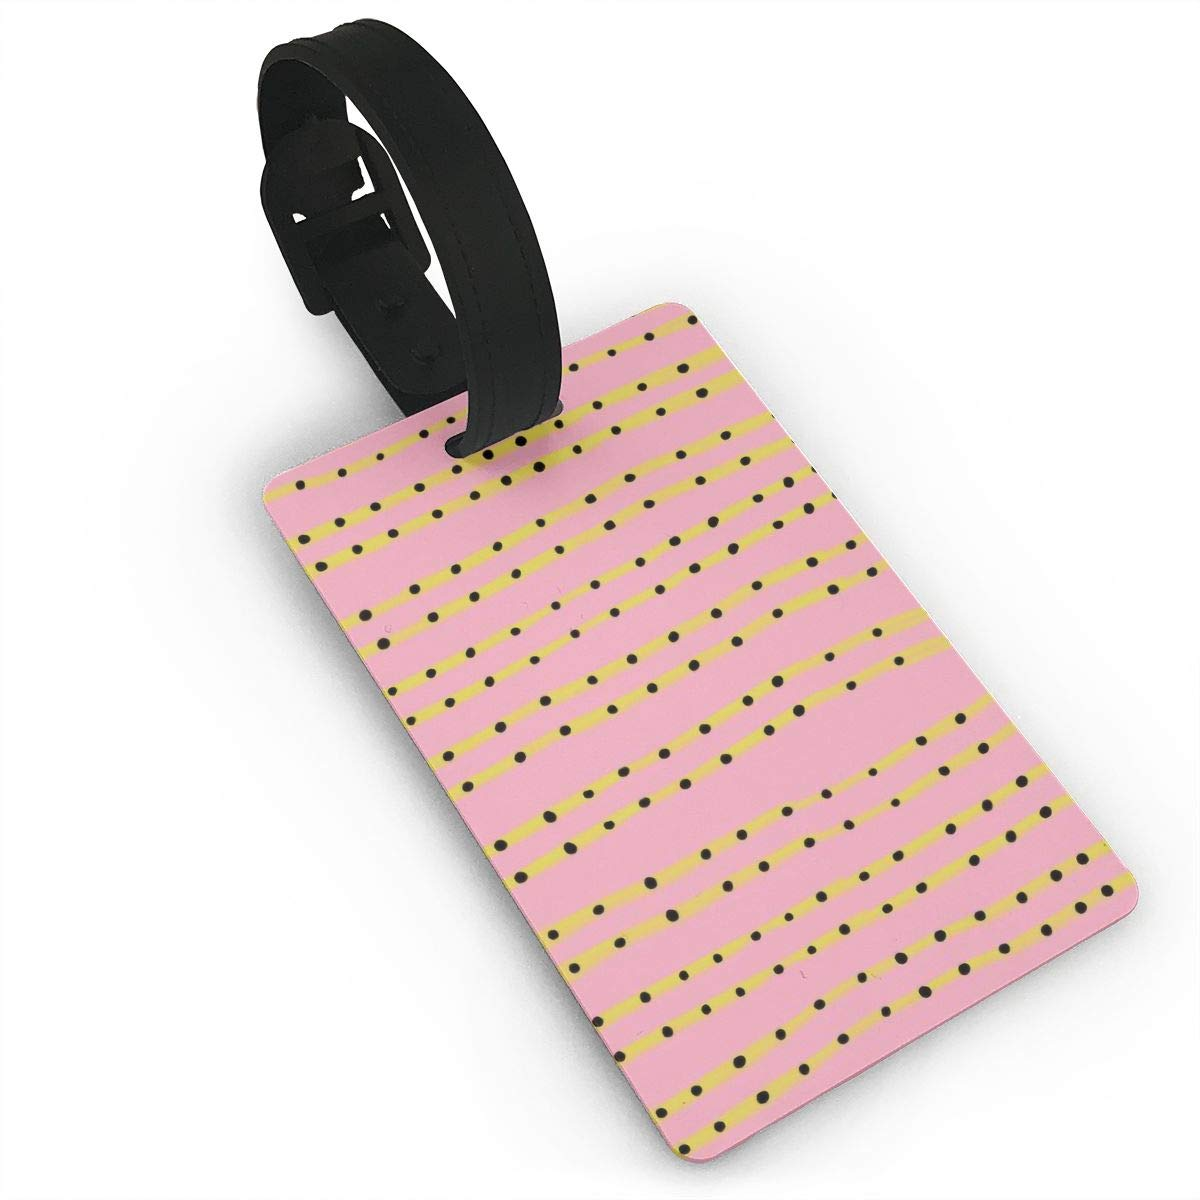 Colorful Polka Dot Handbag Tag For Travel Tags Accessories 2 Pack Luggage Tags